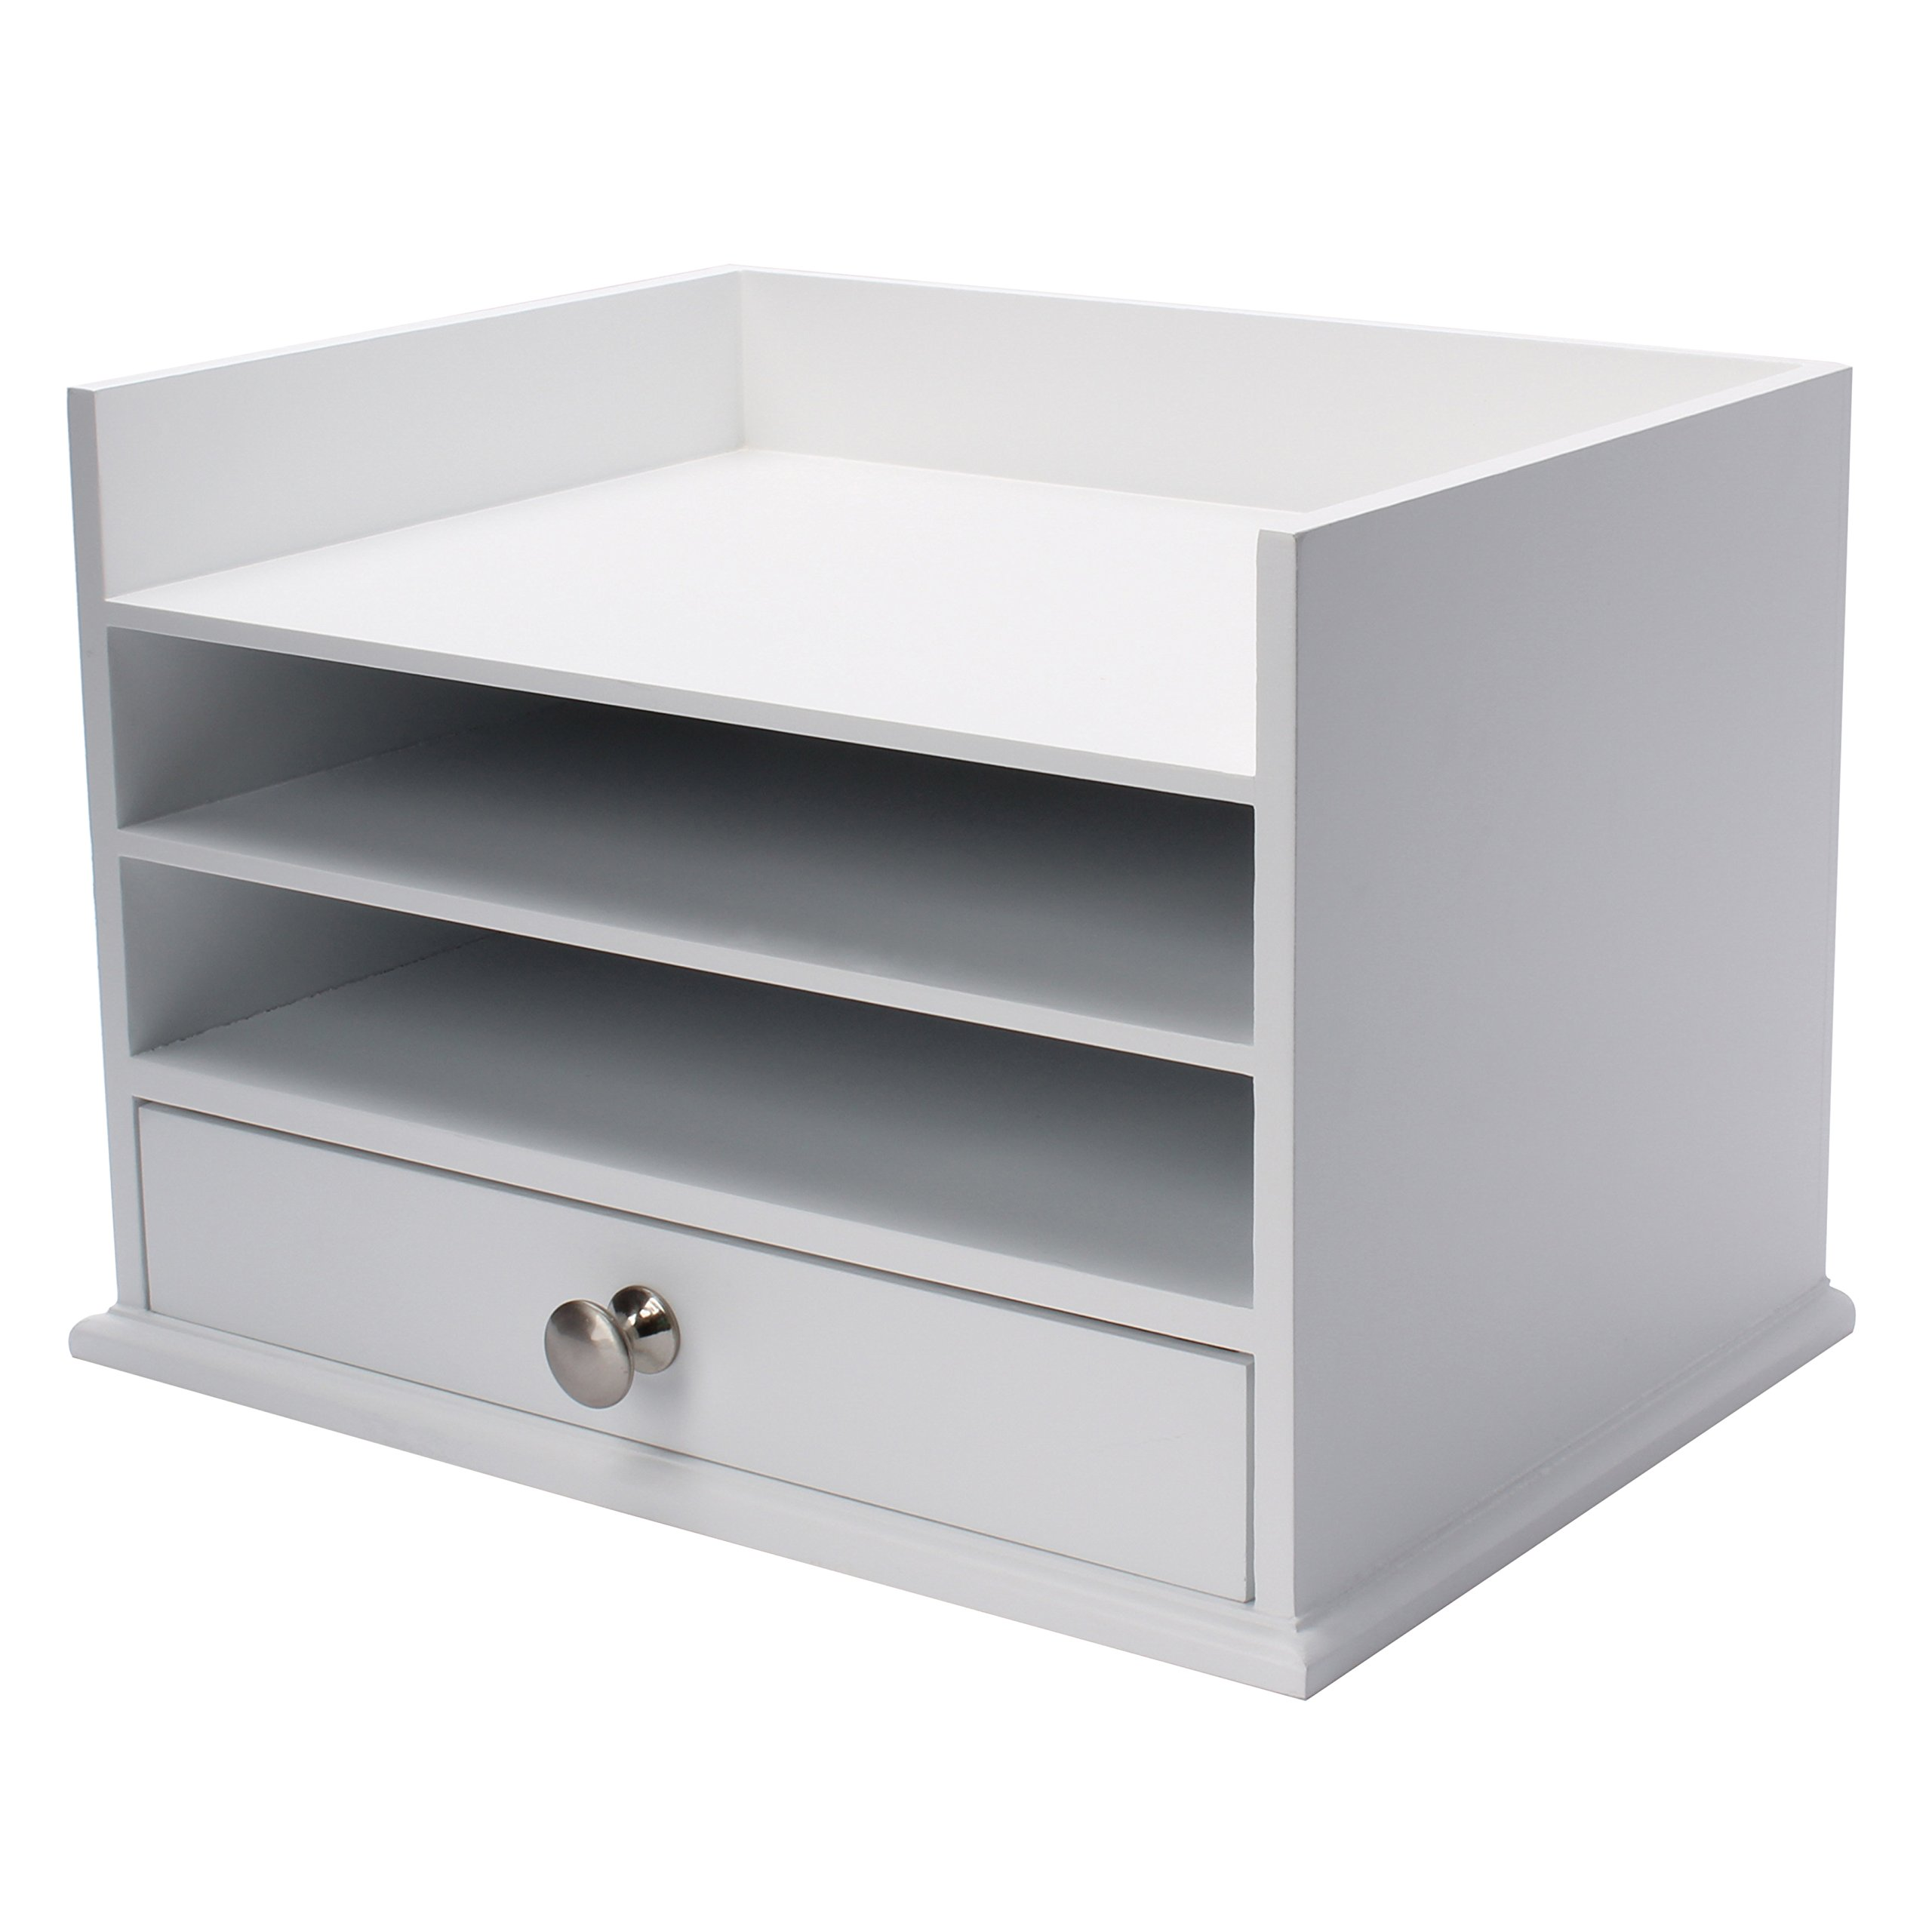 DesignOvation Francesca Desktop Organizer with 3 Letter Trays and Drawer, White by DesignOvation